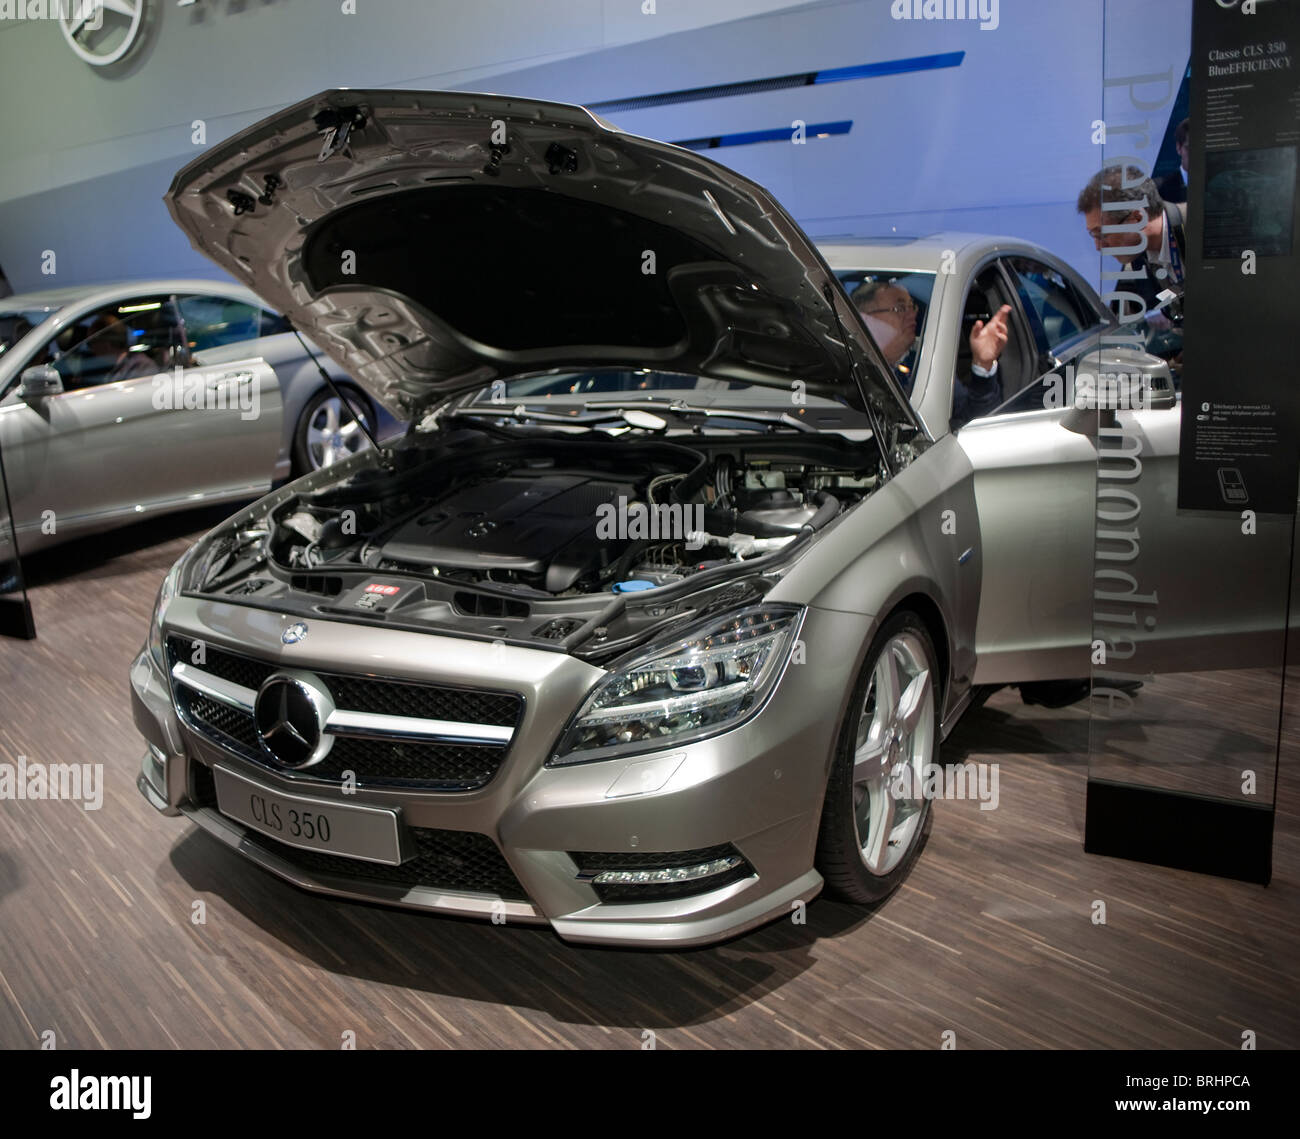 Show mercedes benz stock photos show mercedes benz stock - Mercedes car show ...